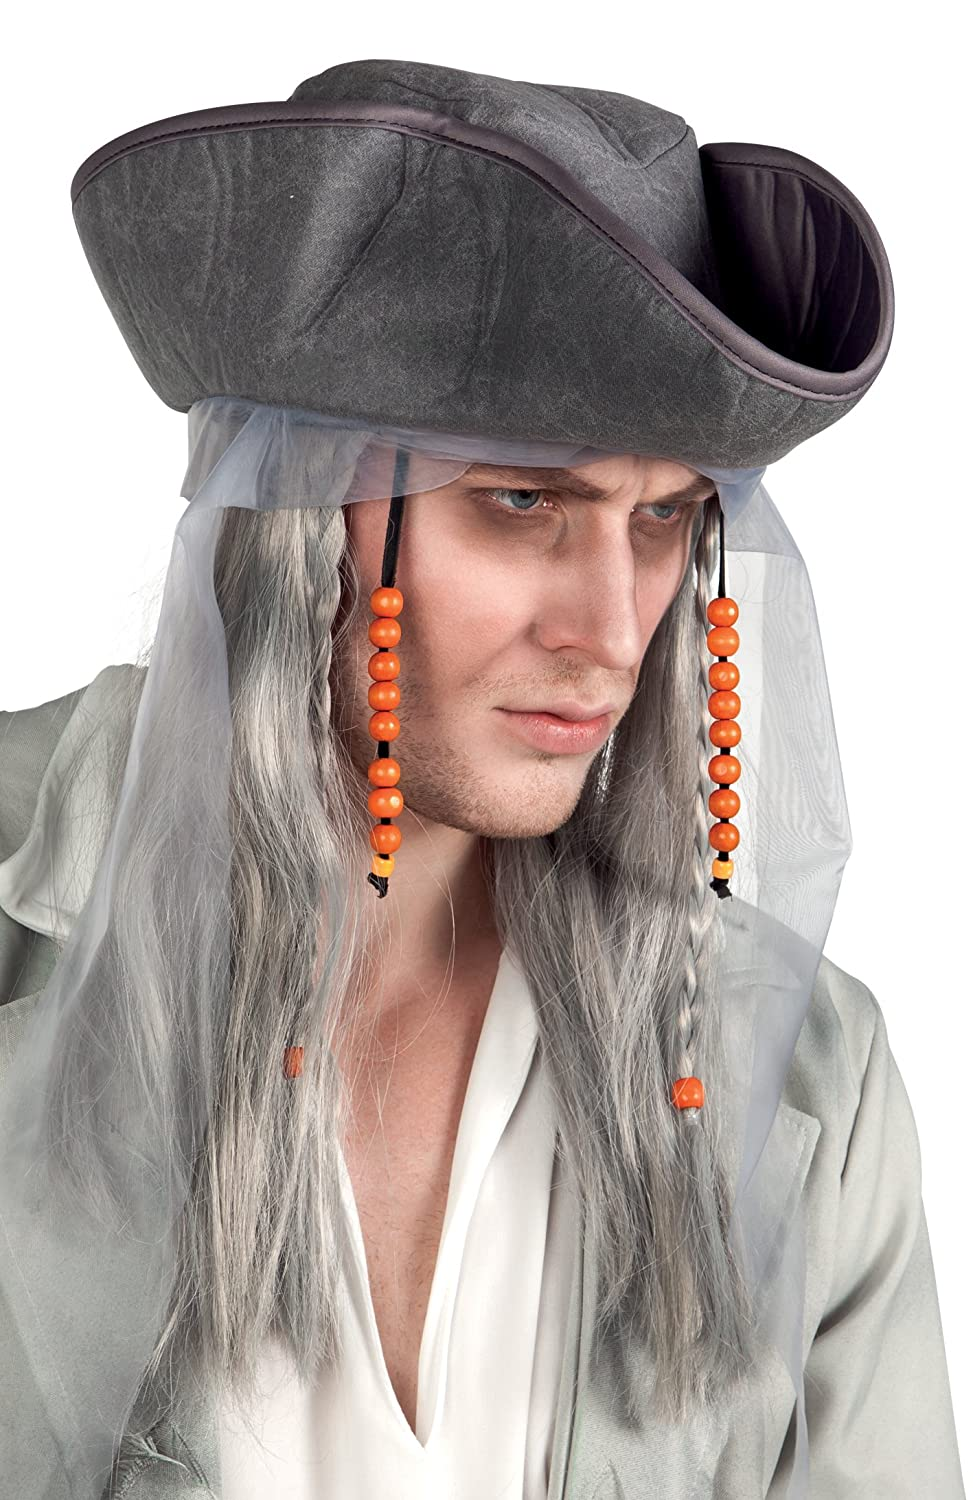 442314915af Boland 85726 Adults Ghost Pirate Wig and Hat